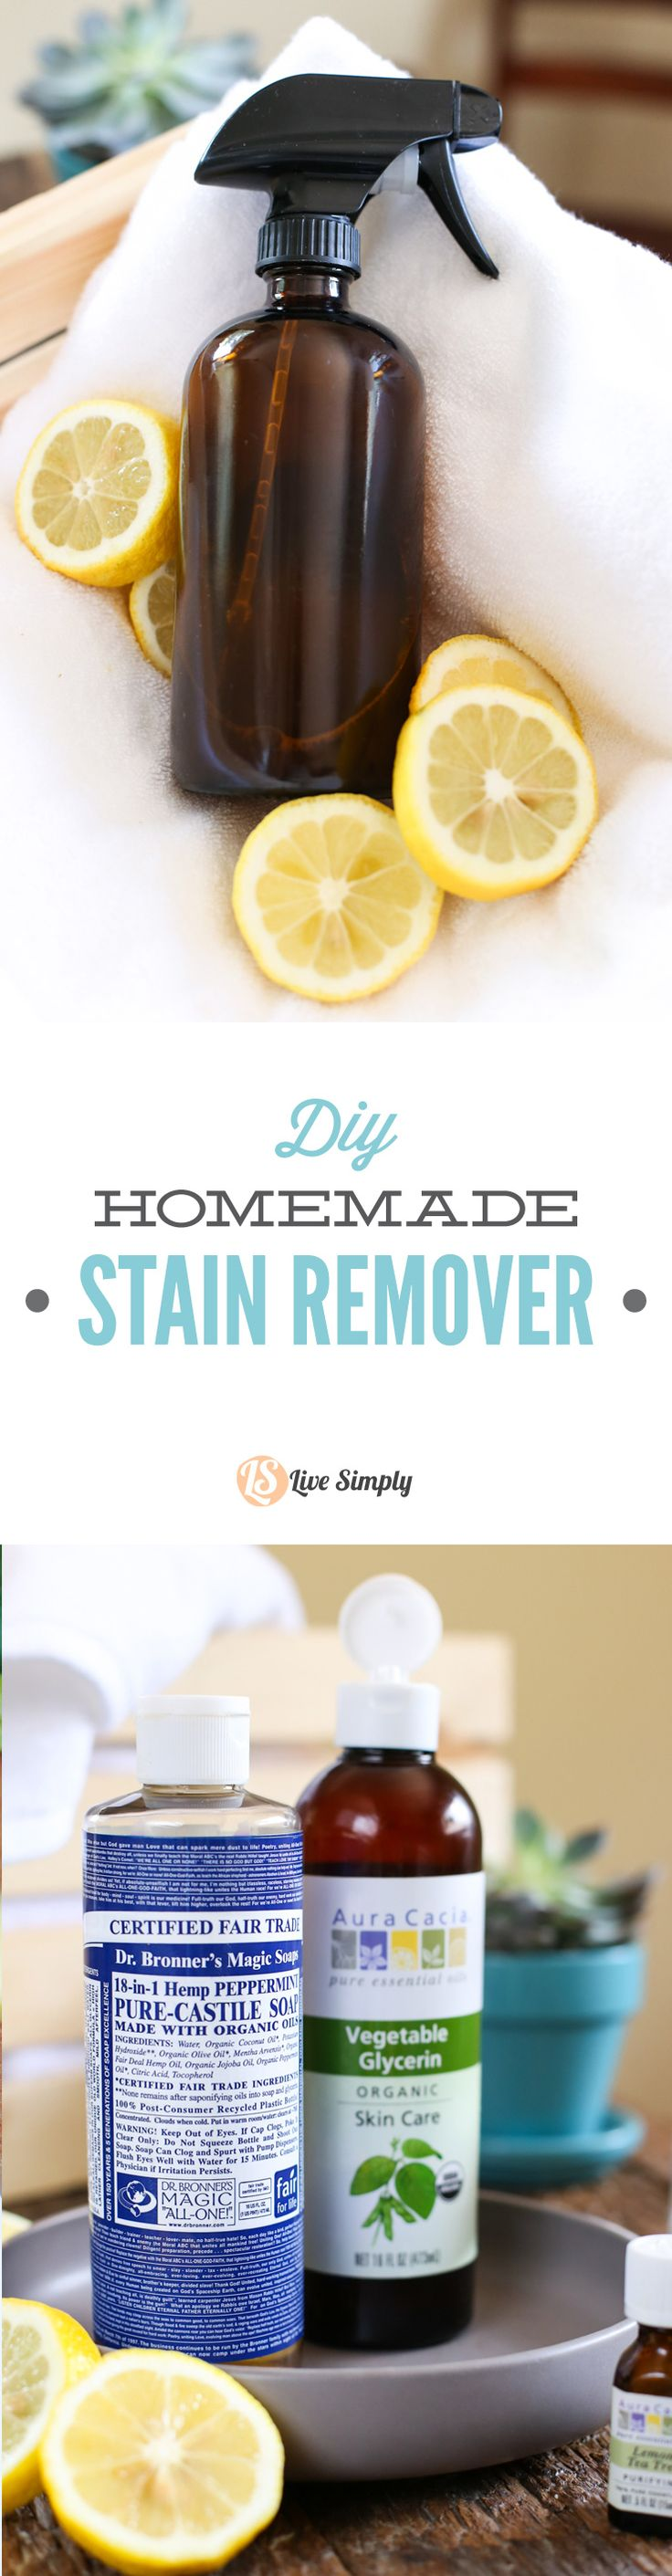 A super easy to make homemade stain remover! This DIY stain remover is made with 100% natural ingredients. AMAZING before and after photos including pen, carrot juice, and ketchup. http://livesimply.me/2015/07/11/diy-homemade-stain-remover-clothes-stains/